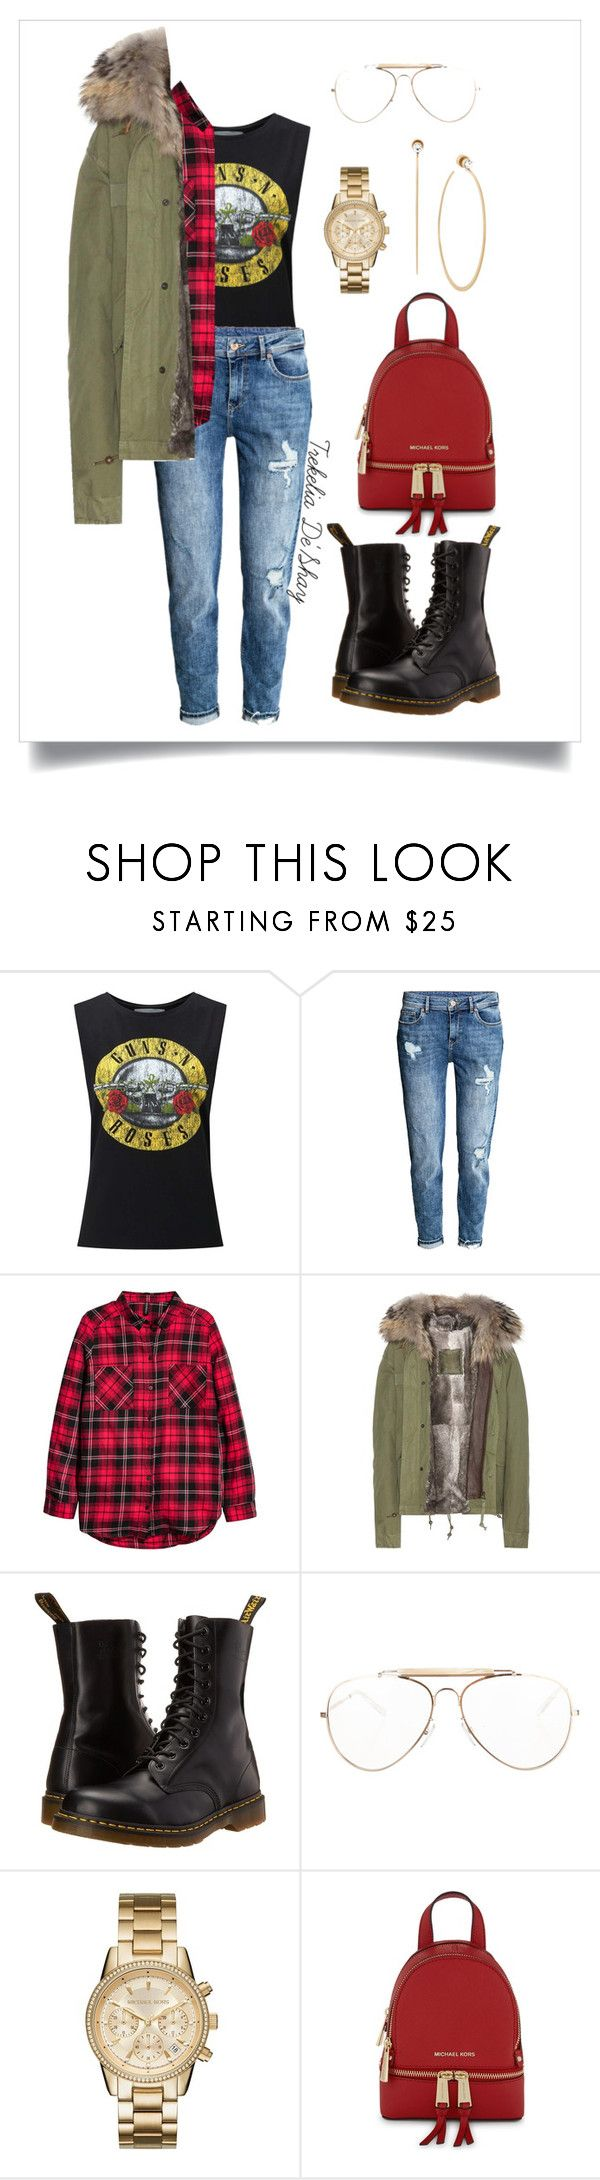 """173 *"" by trekeliadeshay-xo ❤ liked on Polyvore featuring Miss Selfridge, H&M, Mr & Mrs Italy, Dr. Martens, CÉLINE, Michael Kors, MICHAEL Michael Kors, GetTheLook, edgy and tomboychic"